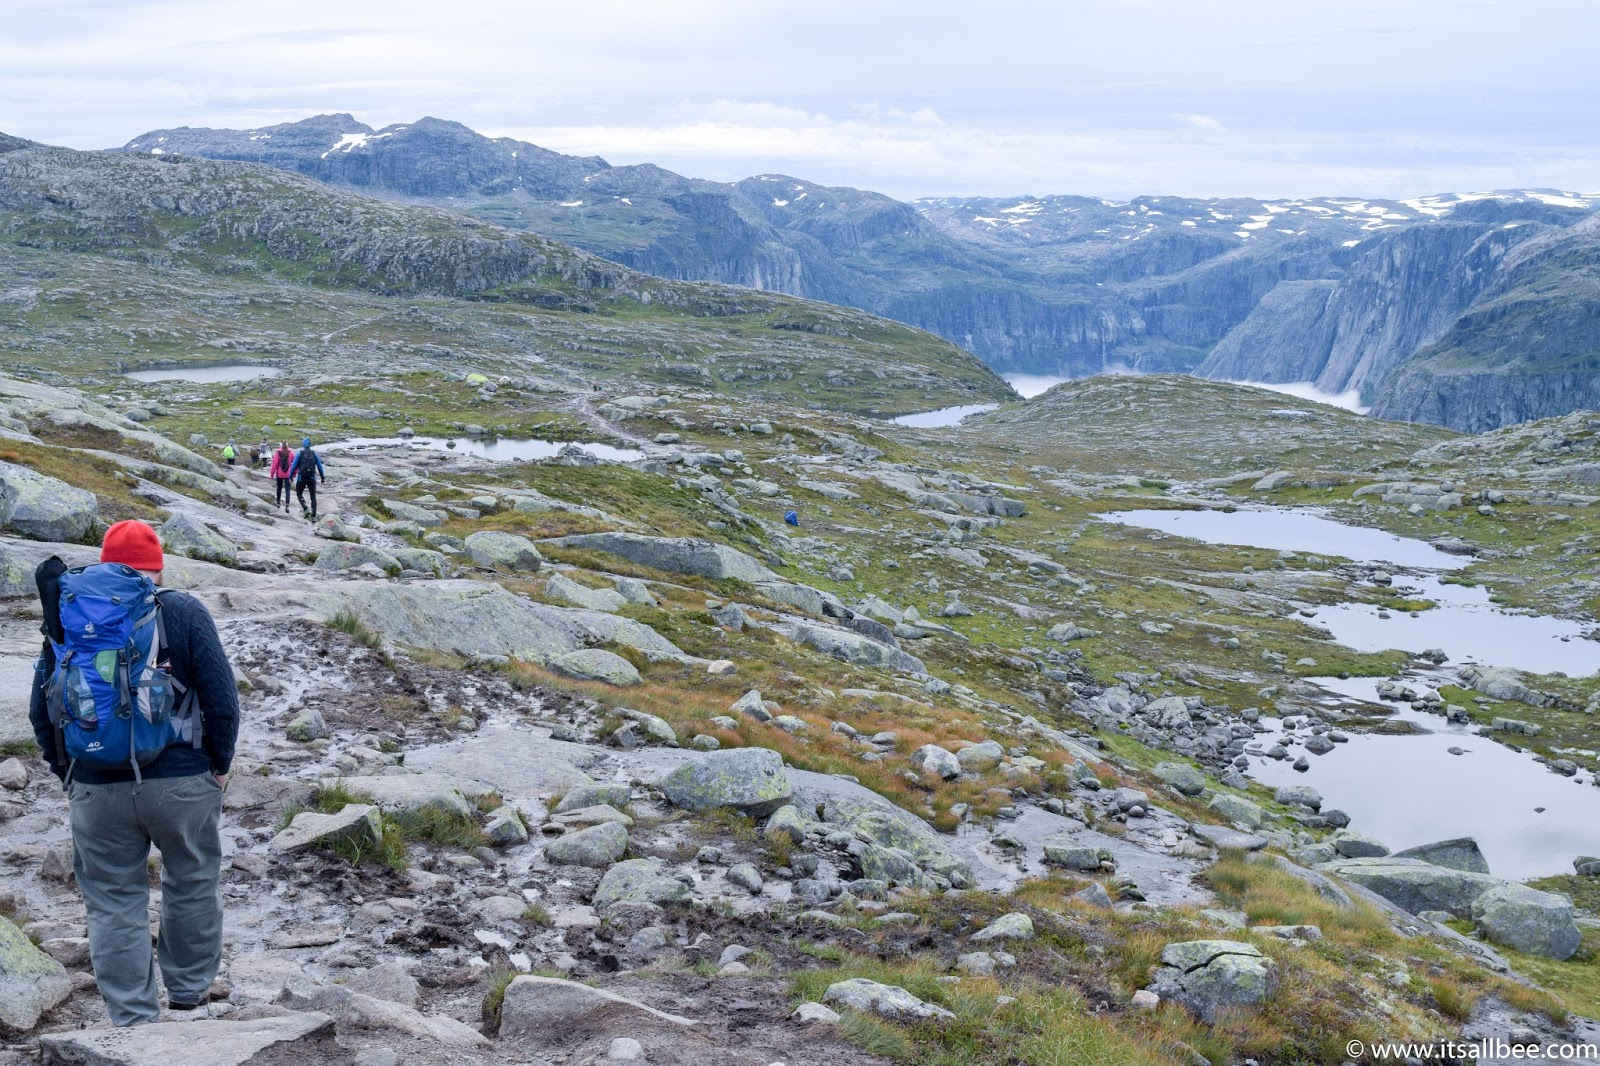 Trolltunga Hike Guide - Your Questions Answered!